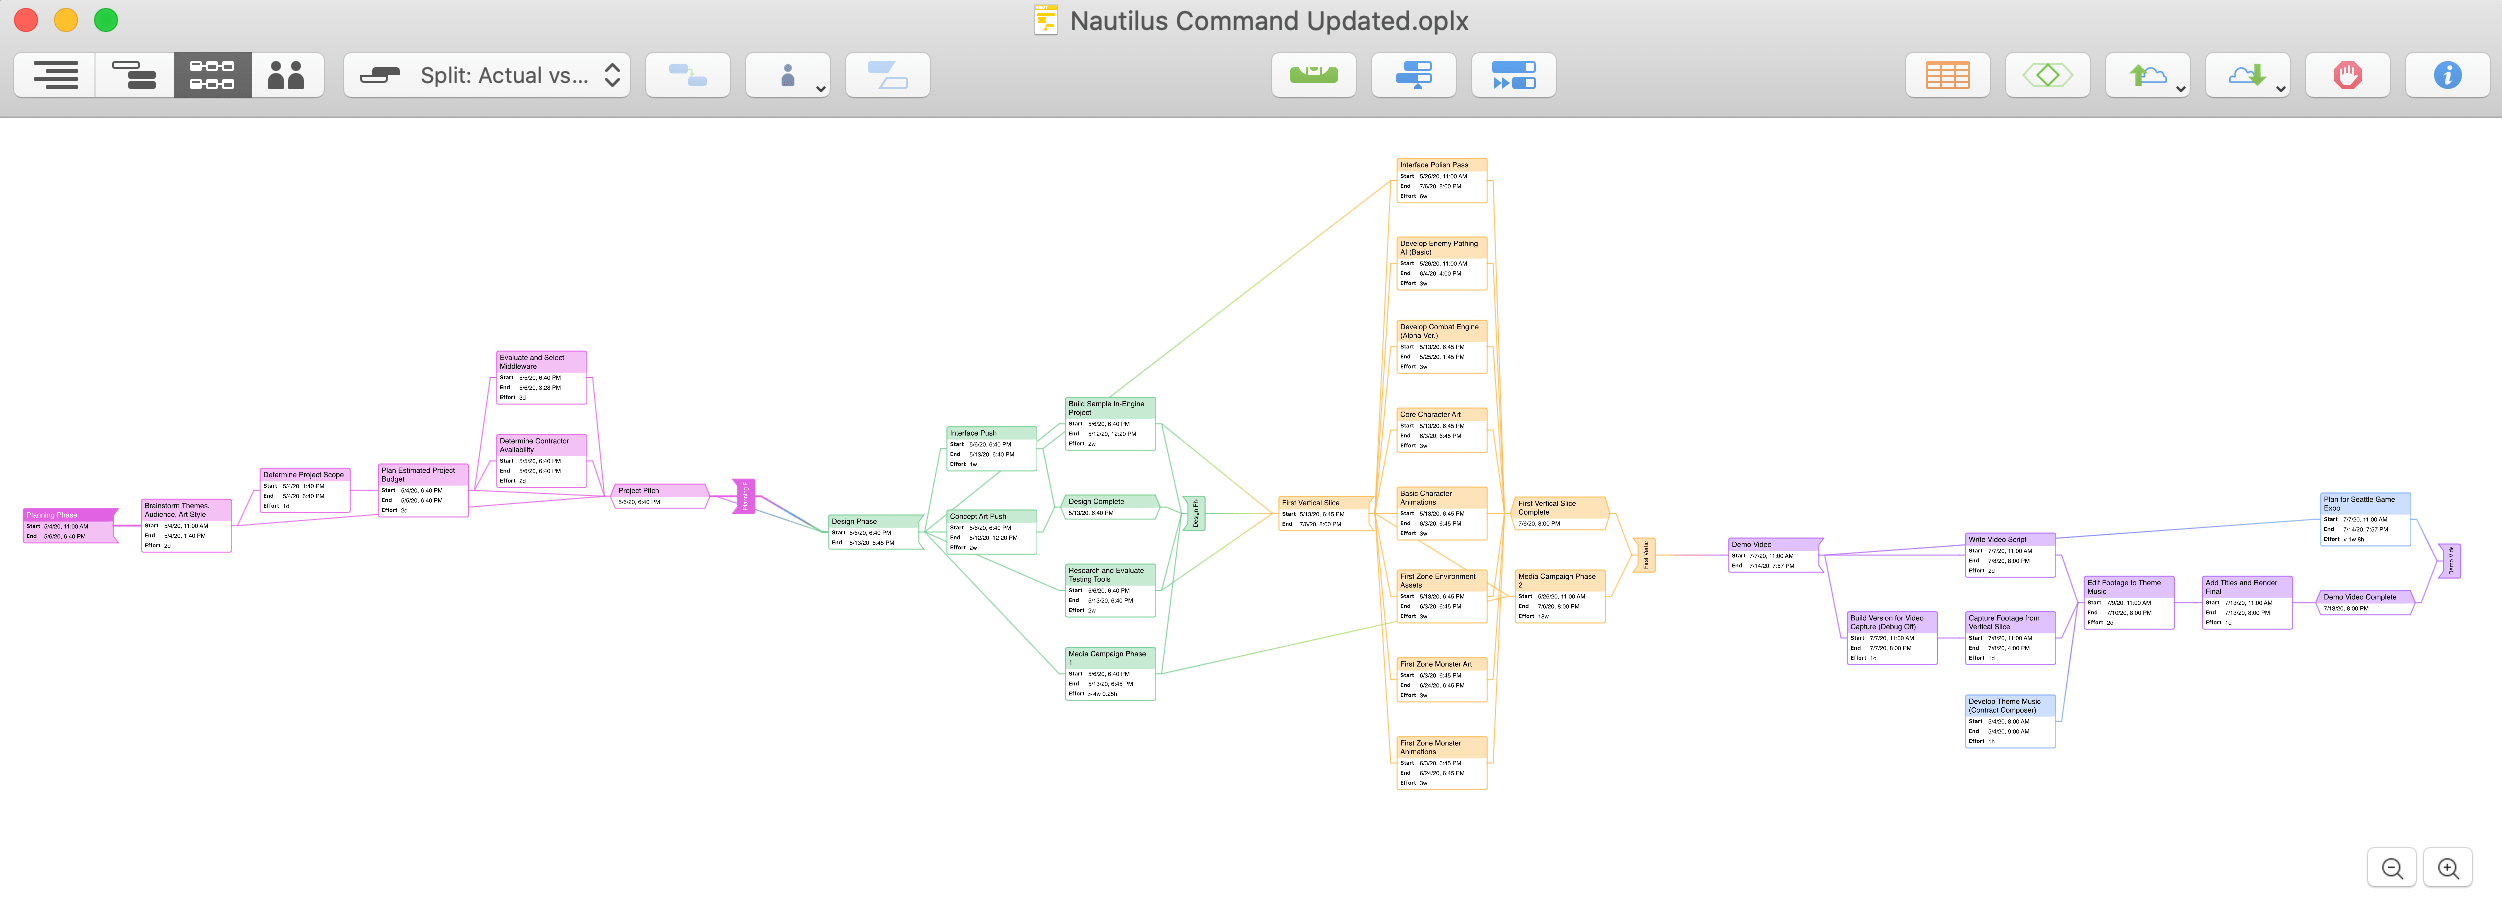 A project in Network view.